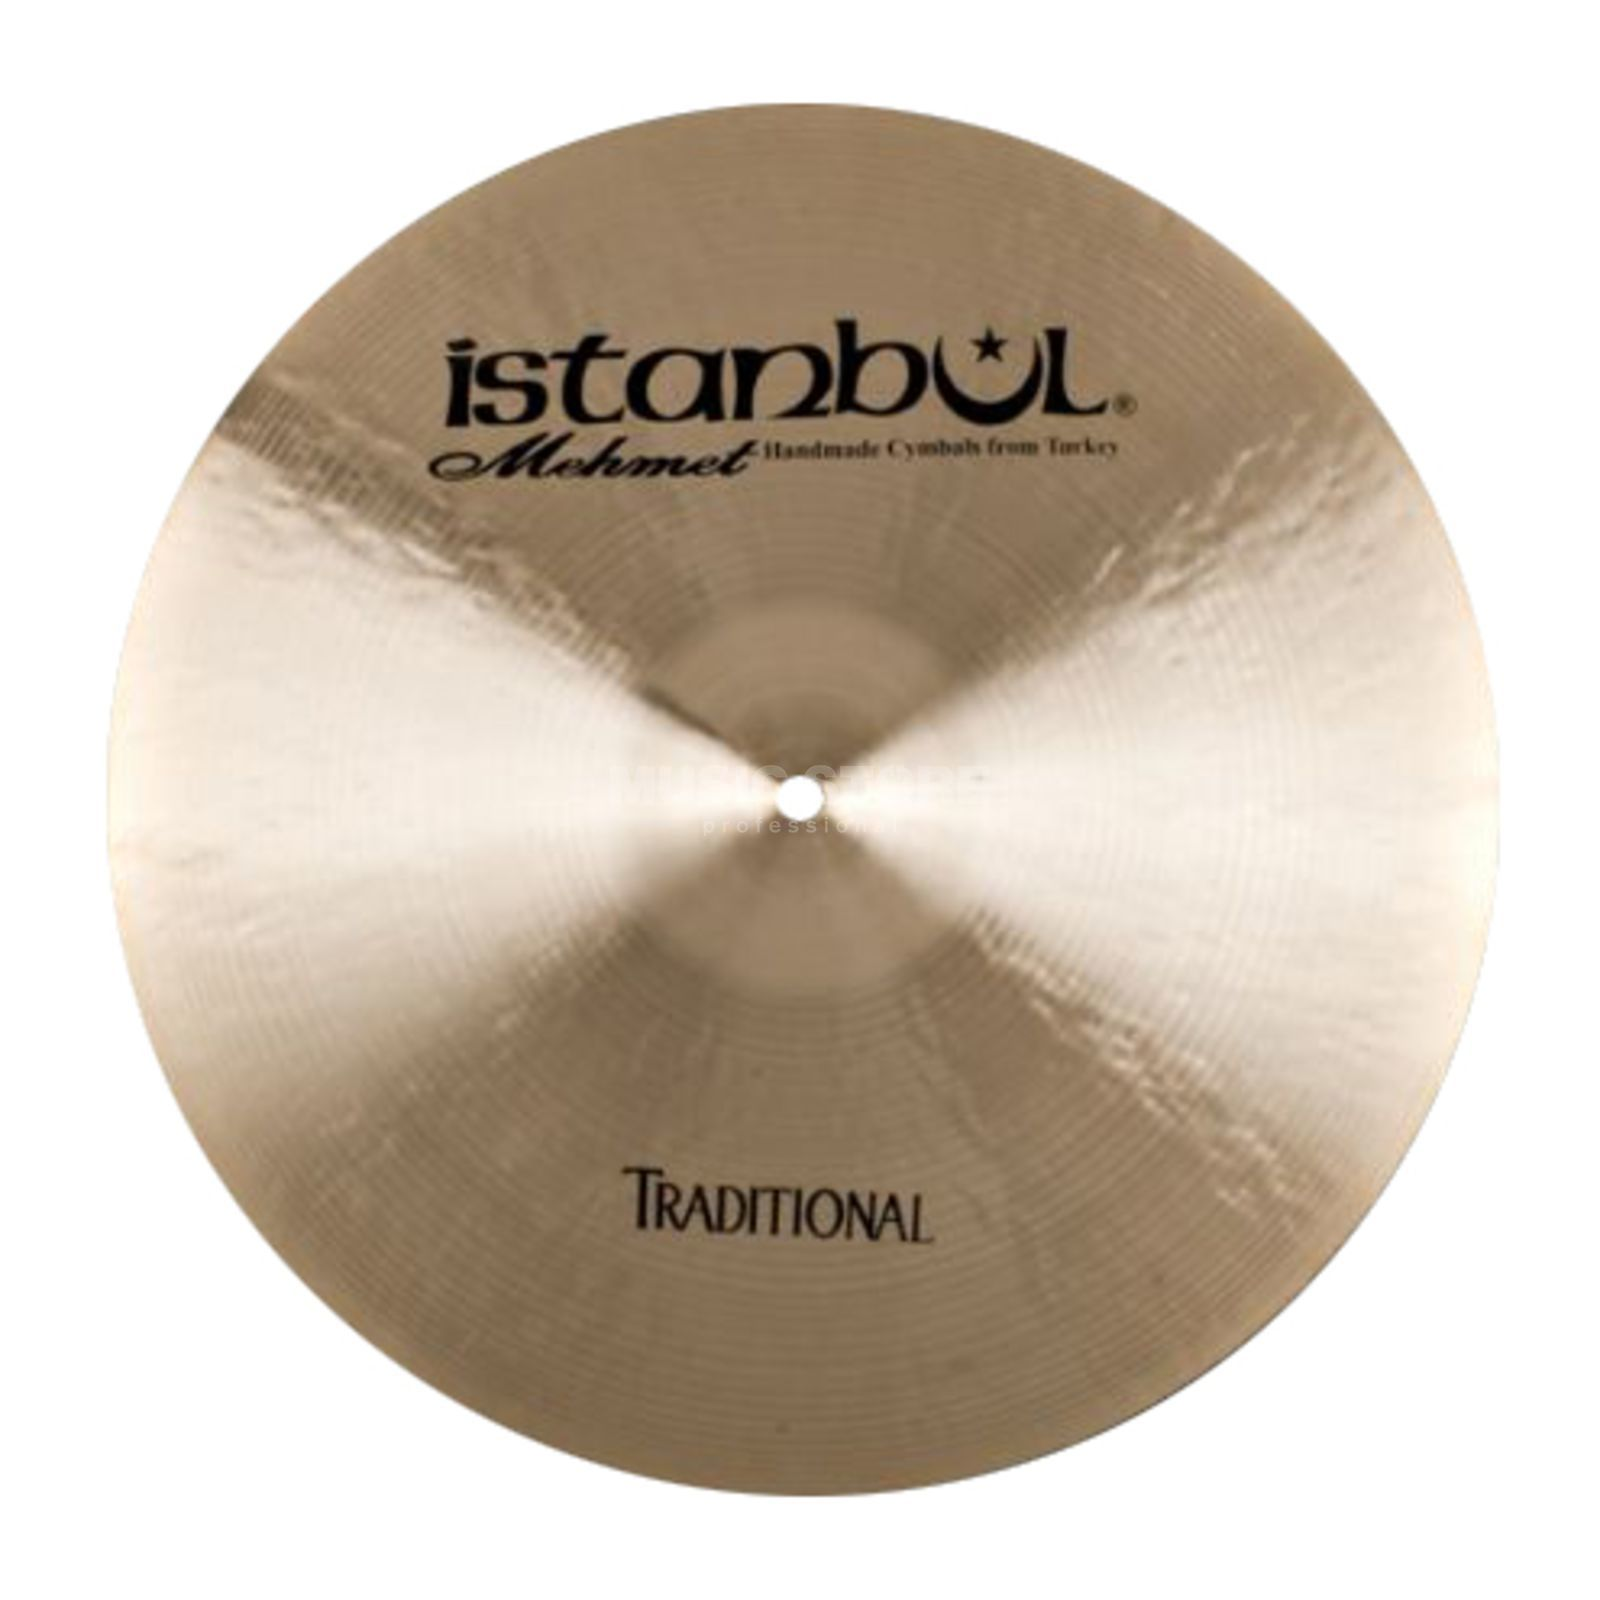 "Istanbul Traditional Heavy Crash 16"", CVY17 Produktbillede"